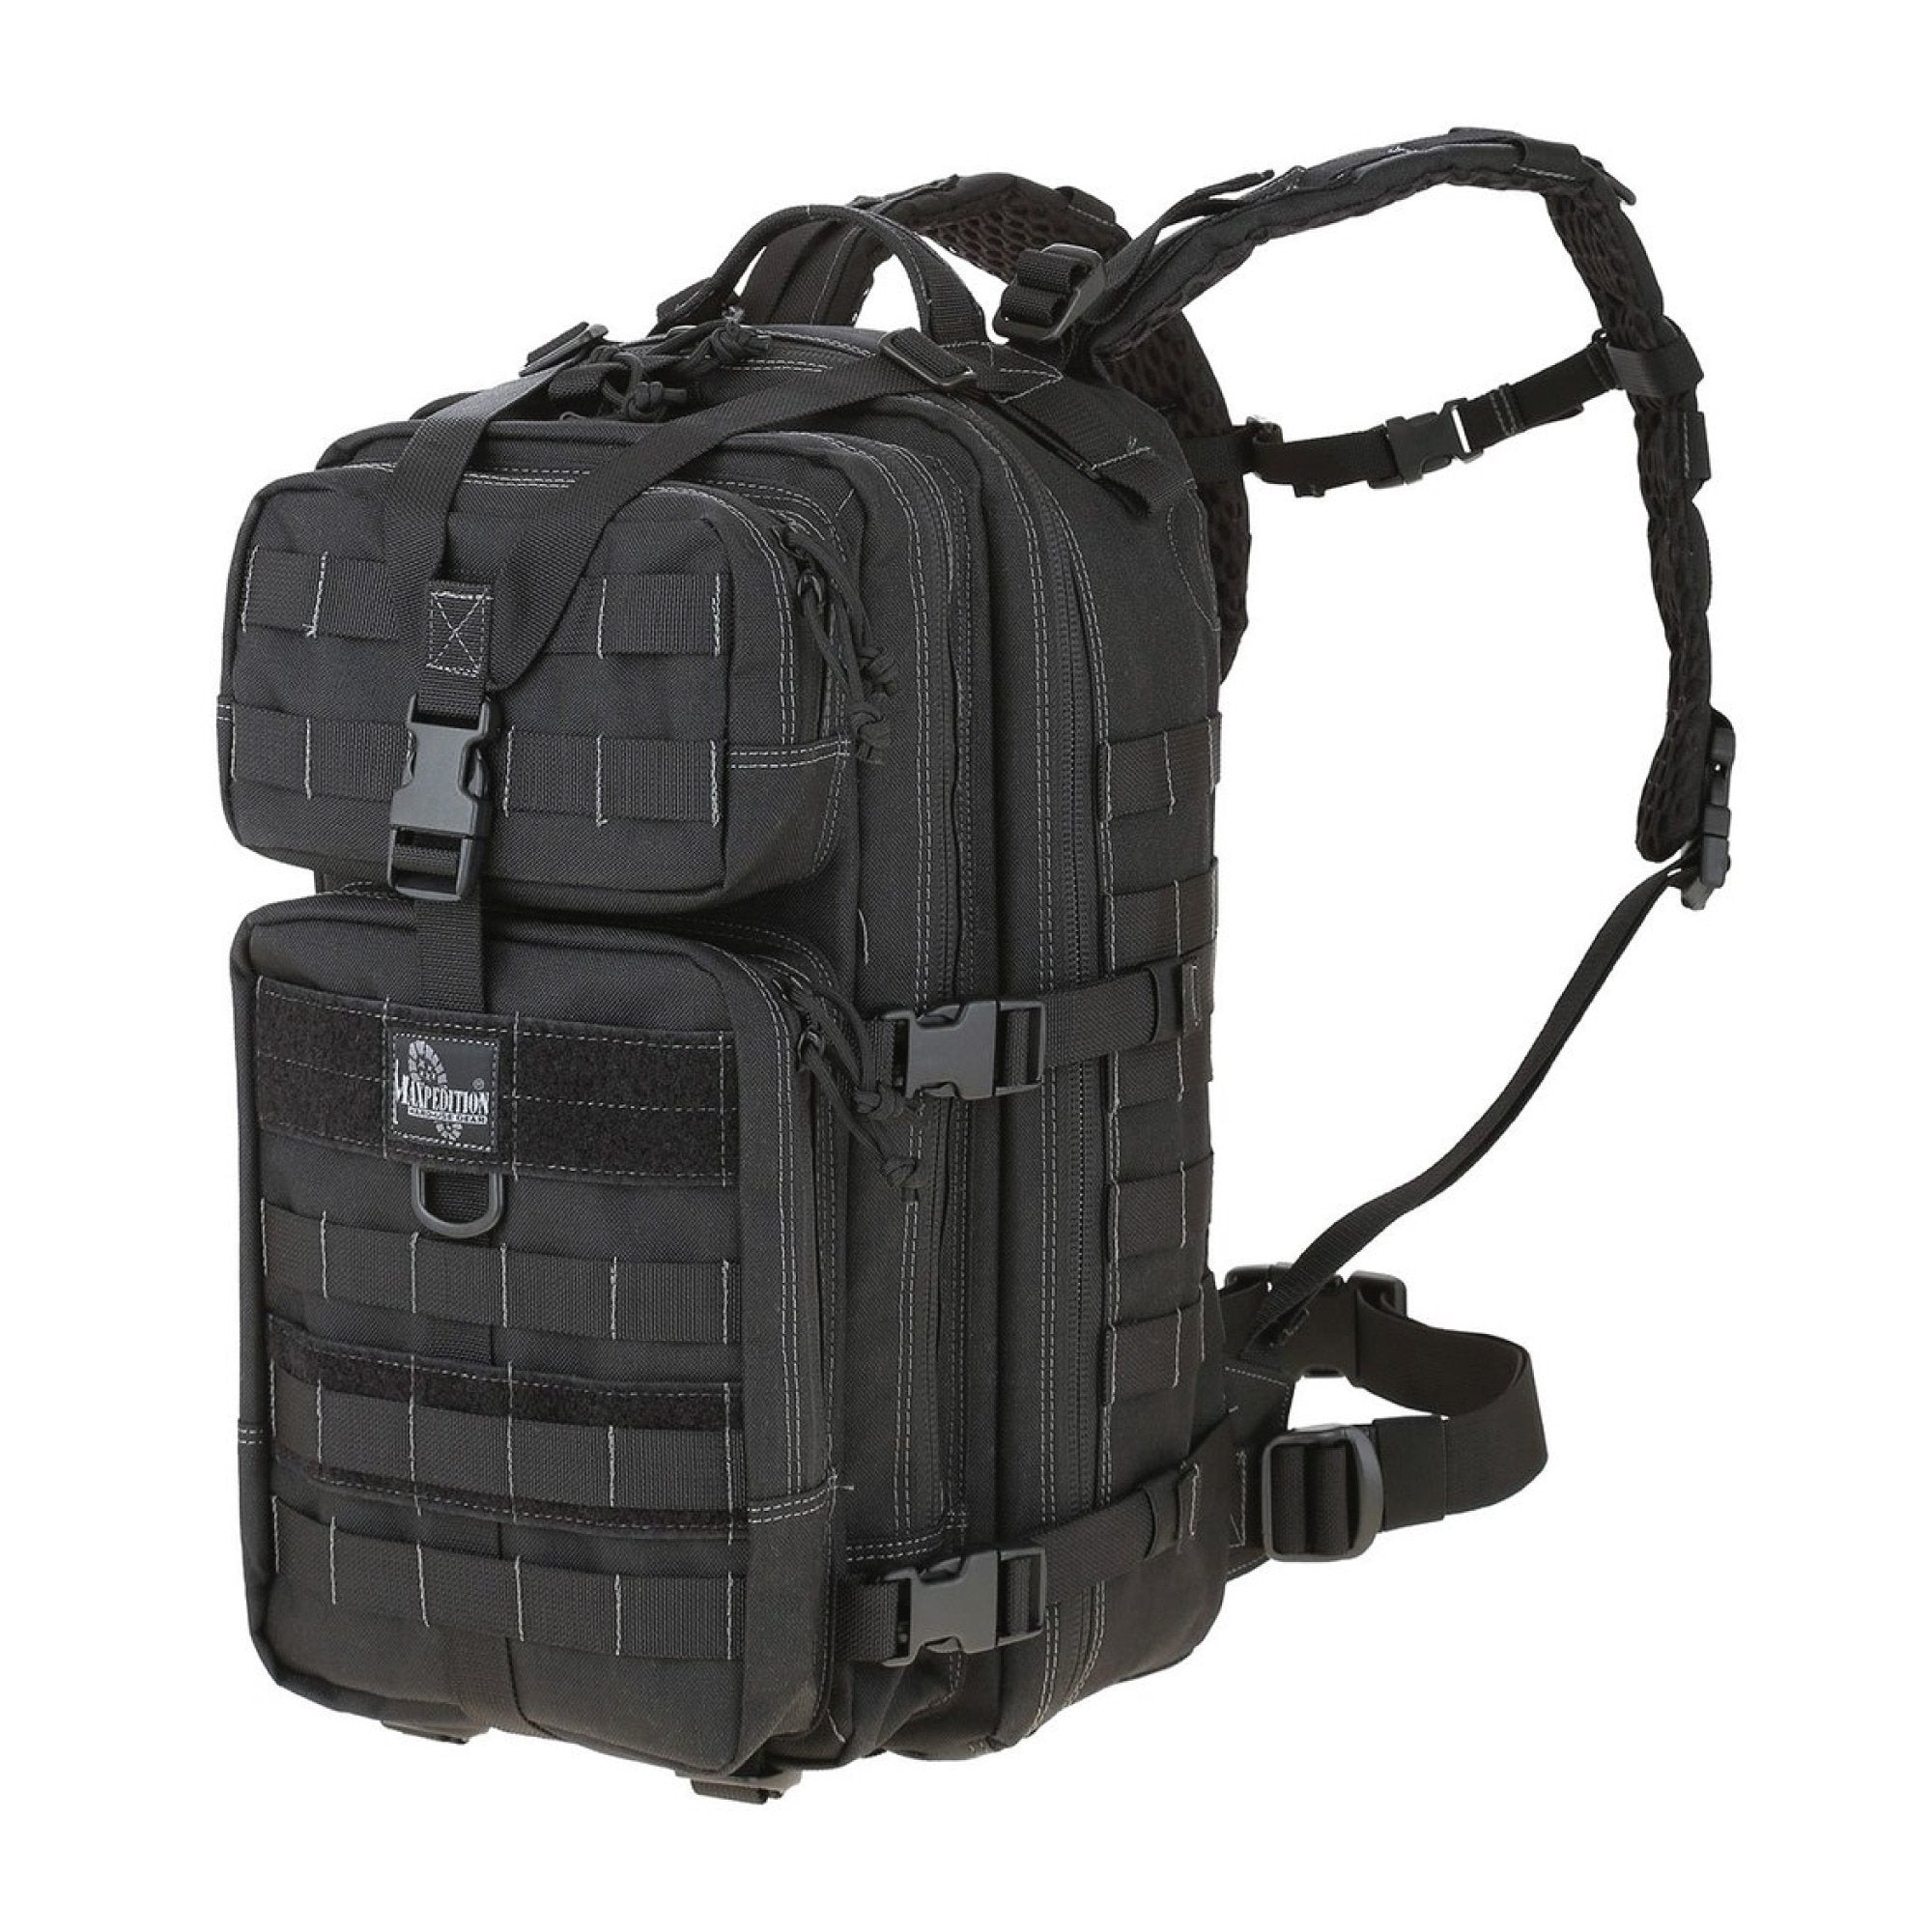 Maxpedition Falcon-III 35-Liter Backpack Tactical Gear Australia Supplier Distributor Dealer